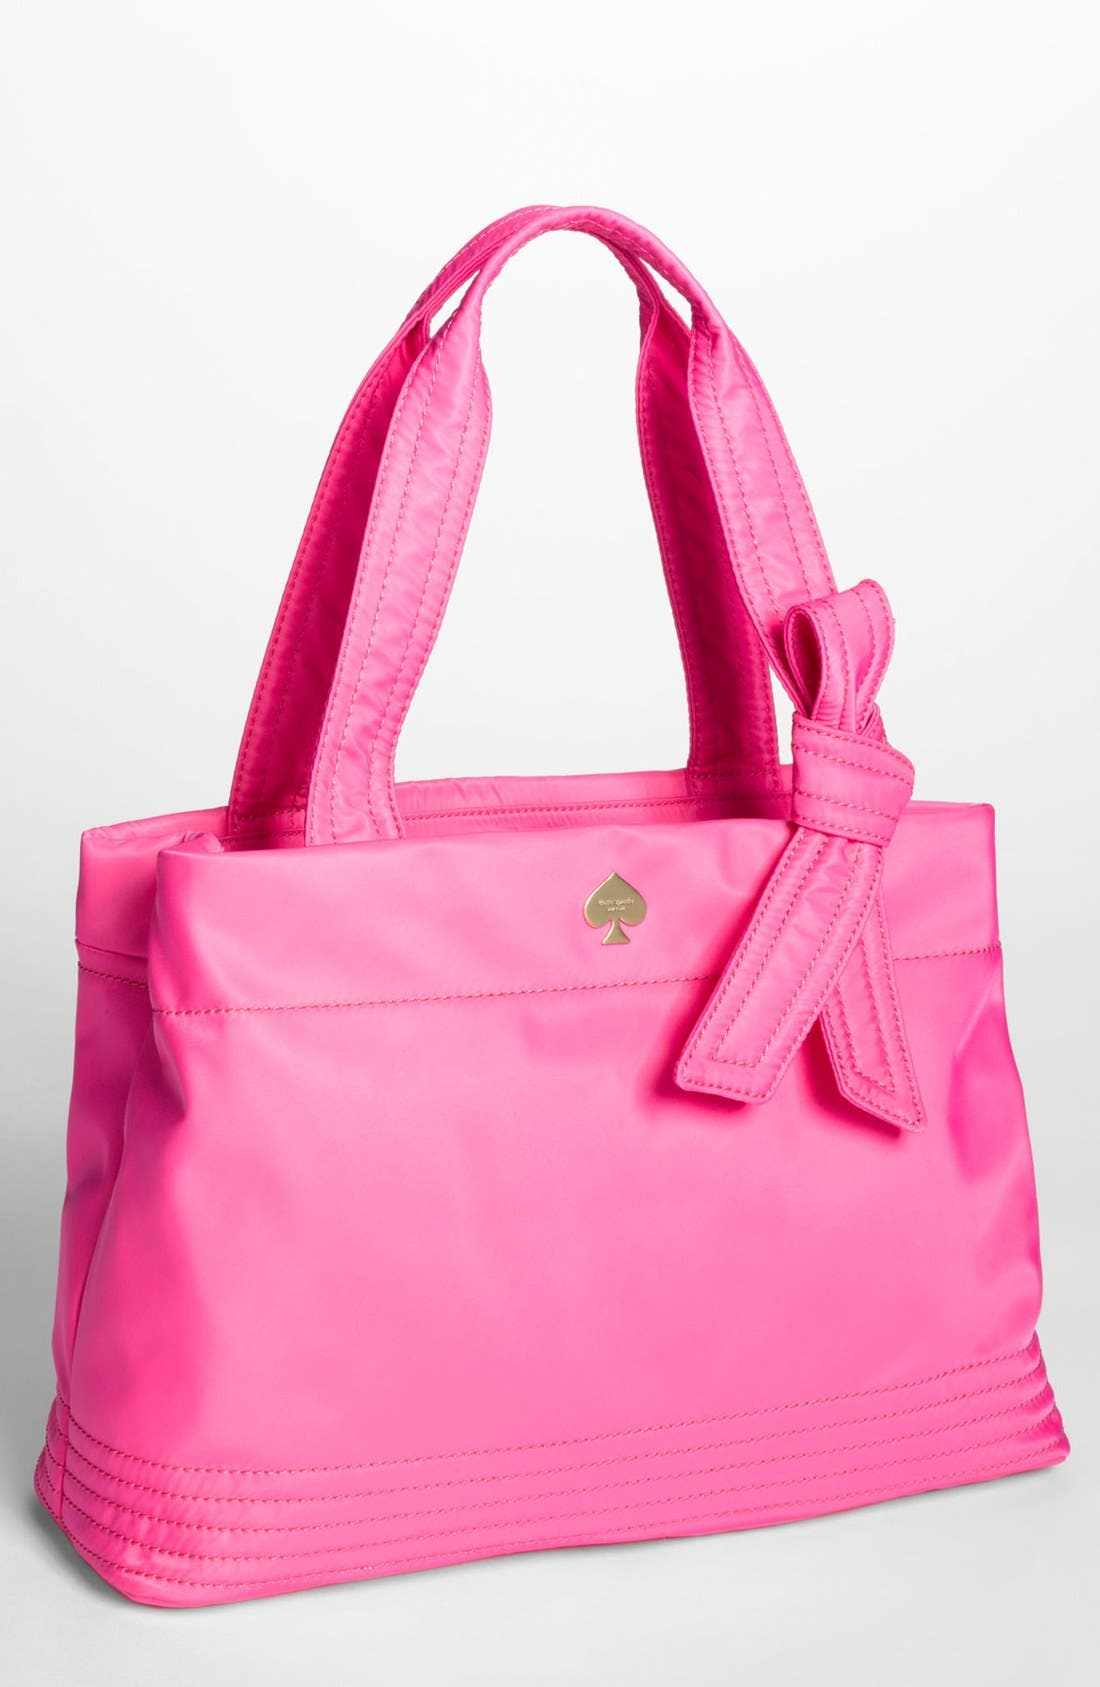 Alternate Image 1 Selected - kate spade new york 'flatiron - maryanne' nylon shopper, Large